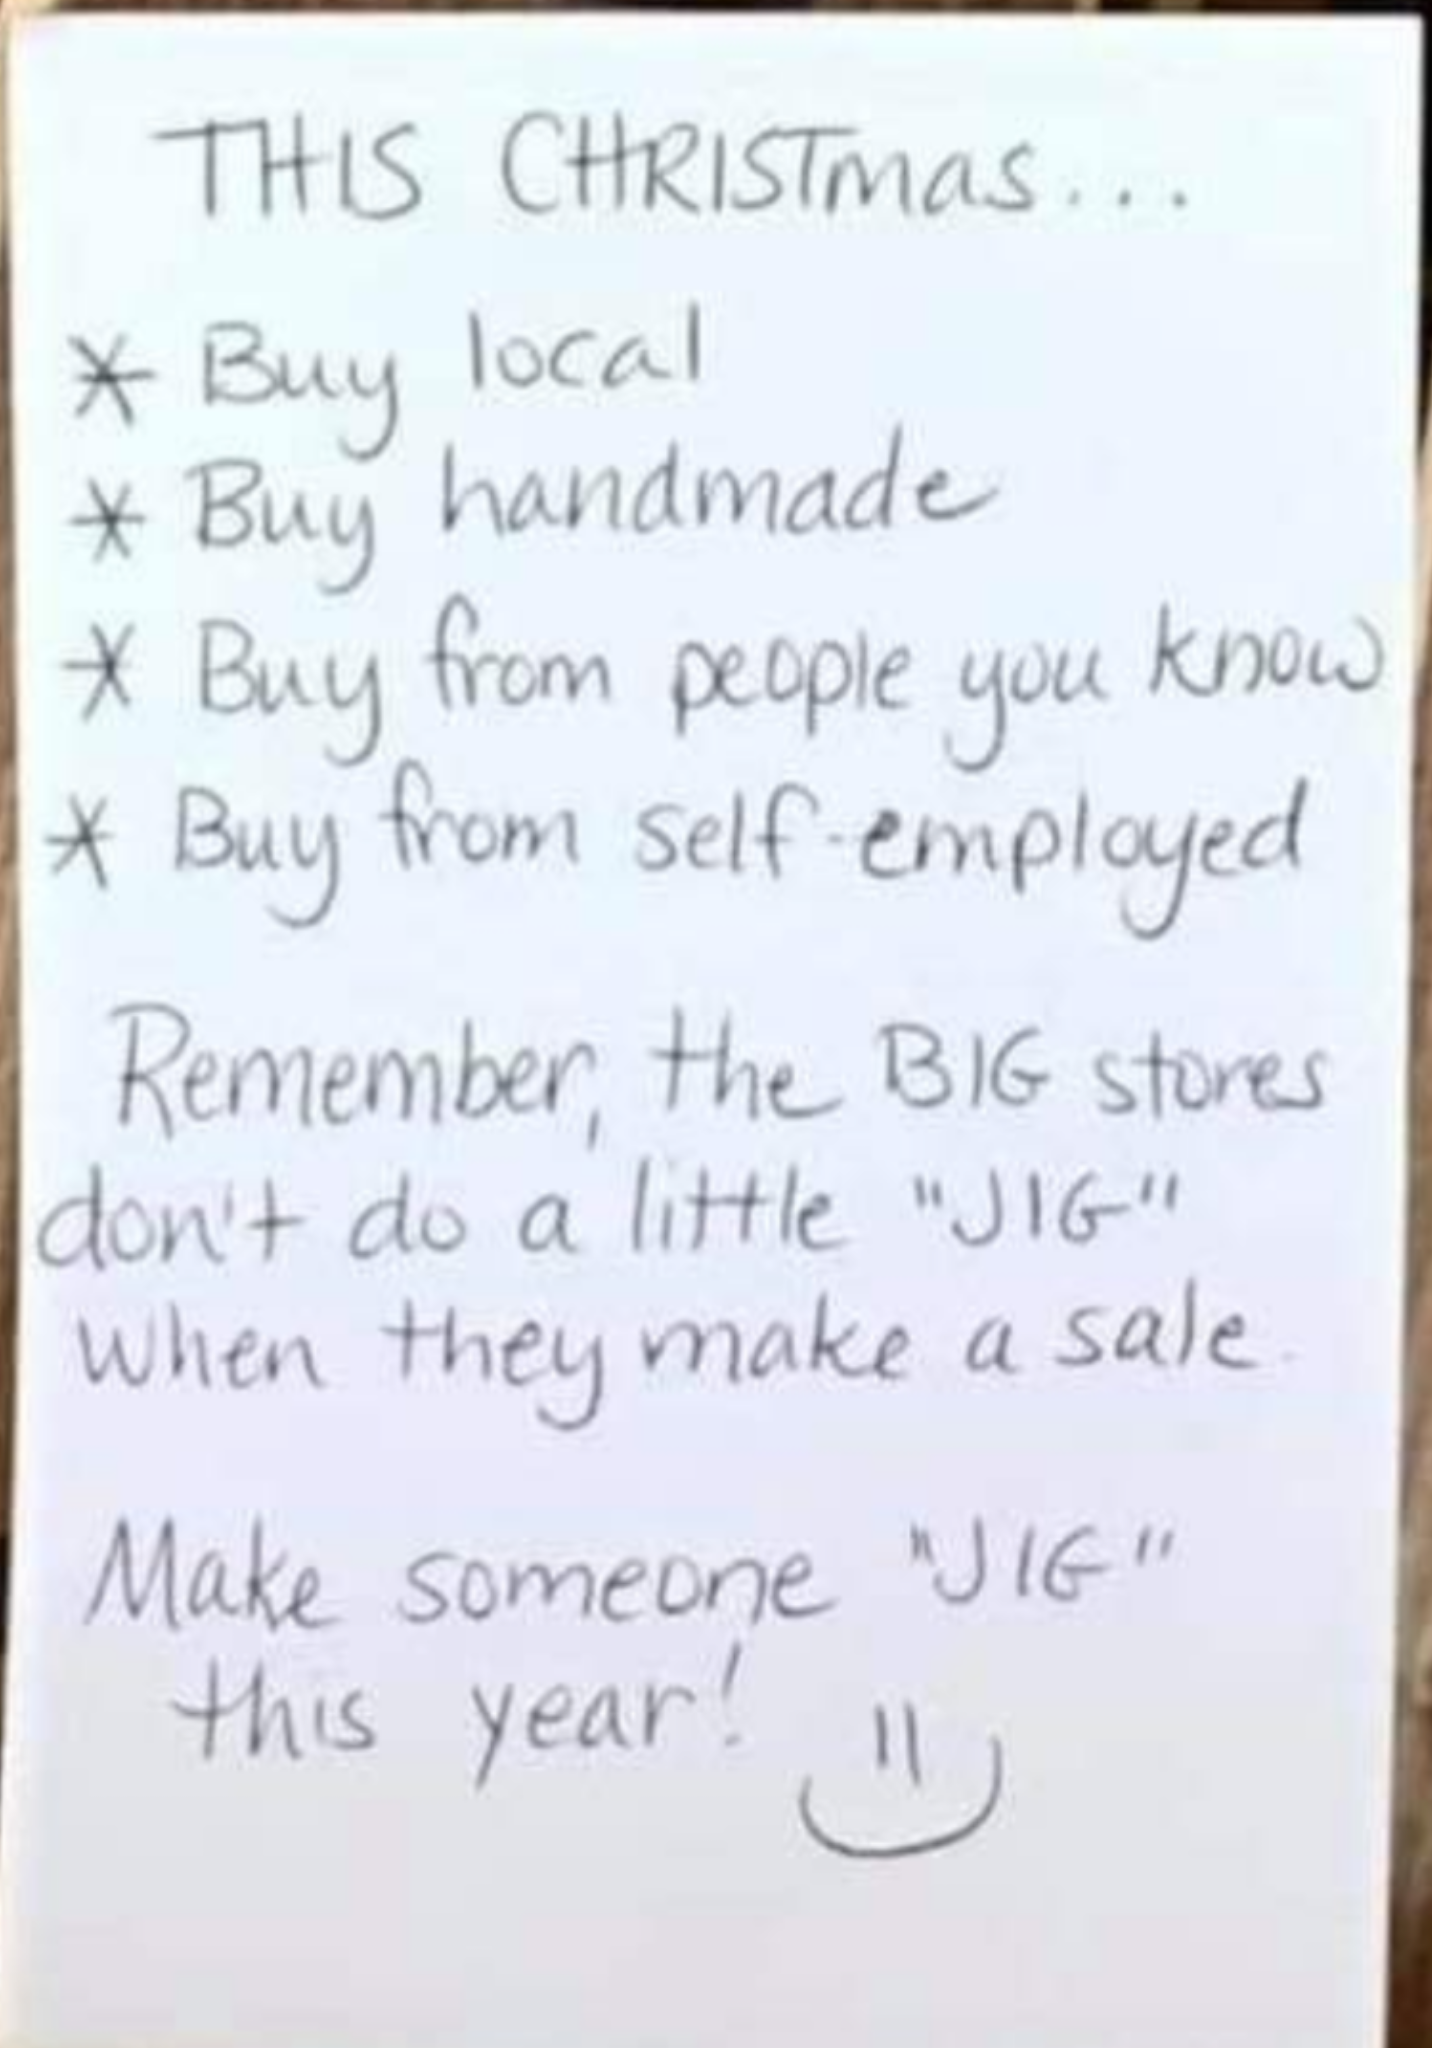 Don't buy from the big stores this holiday season